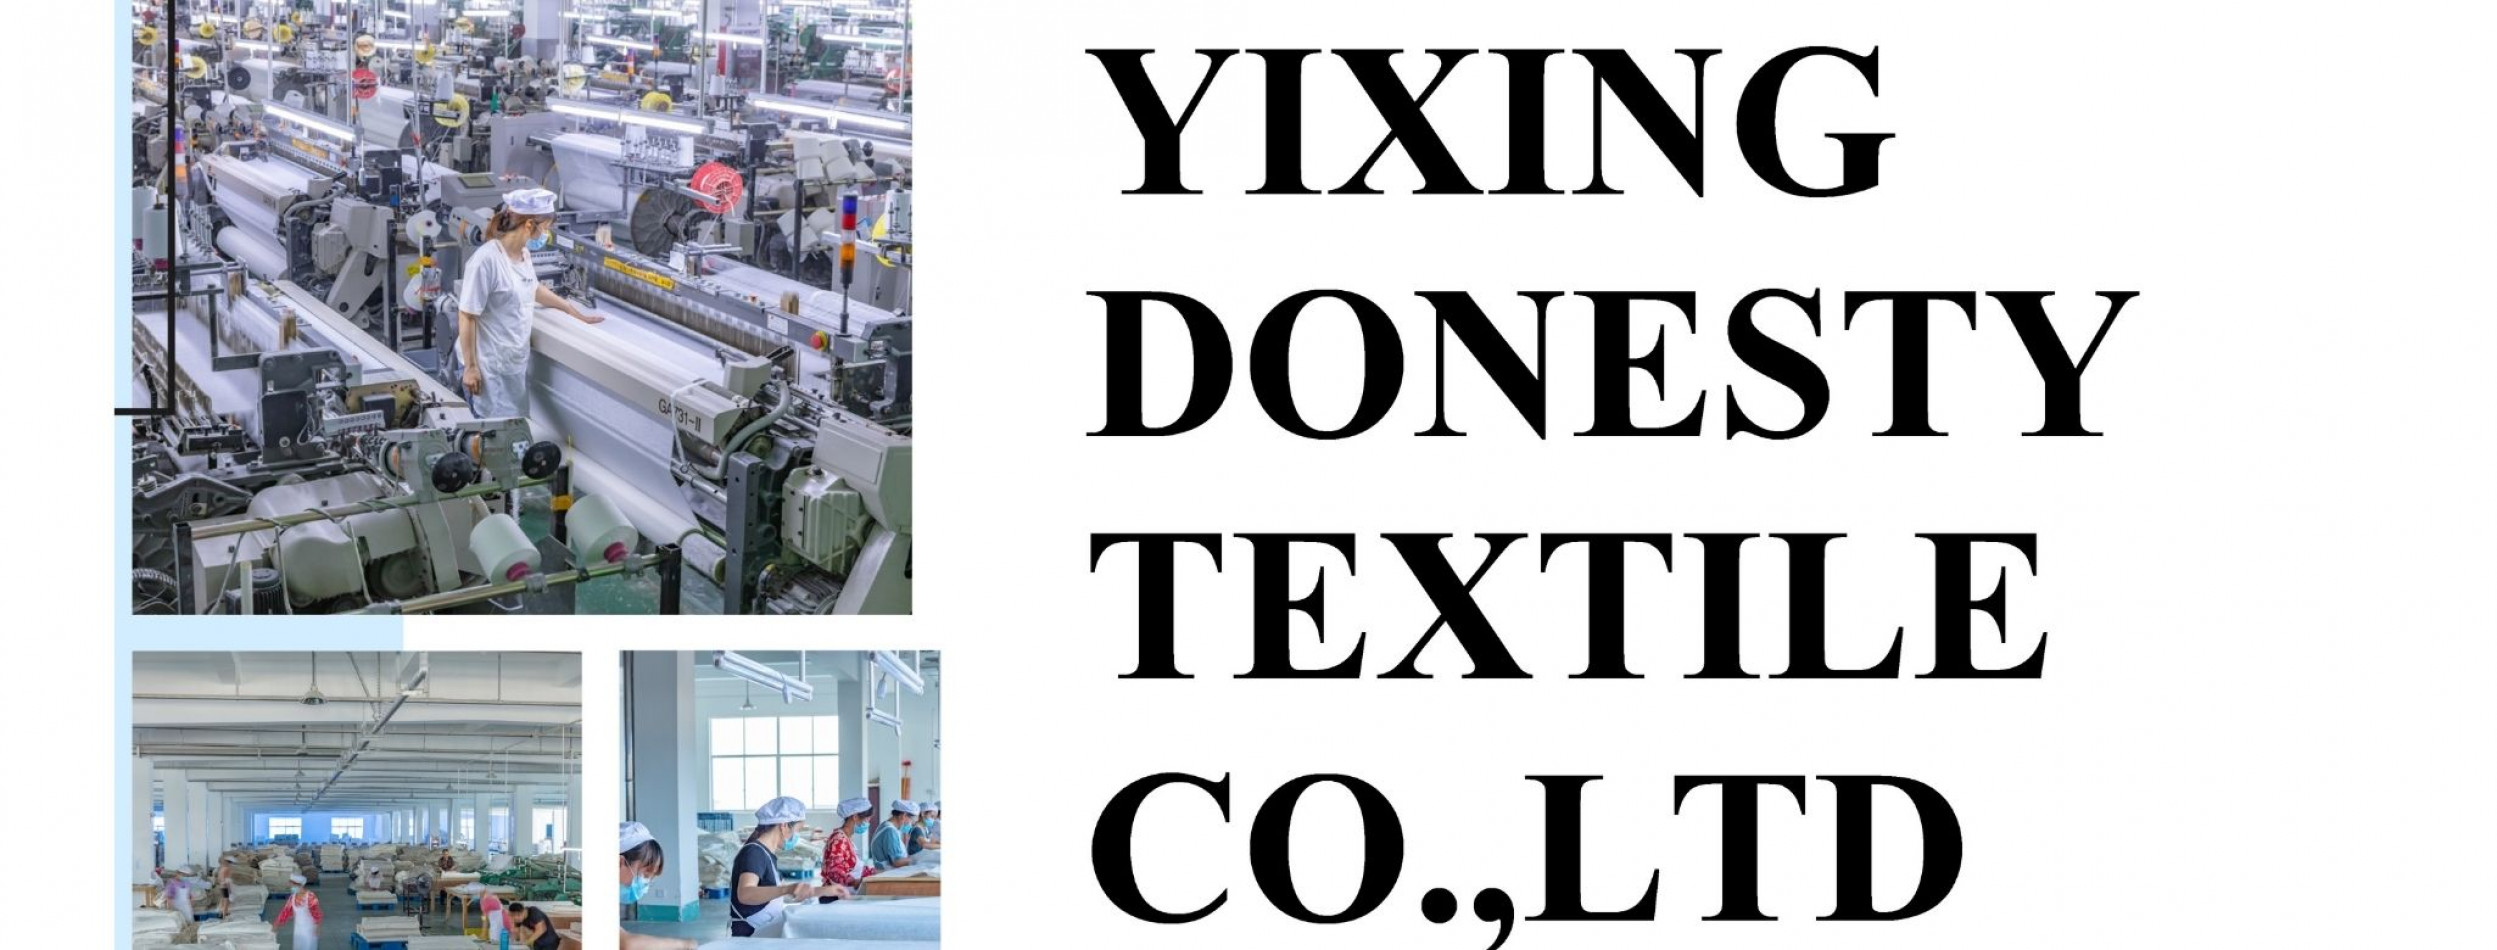 YIXING DONESTY TEXTILE CO.,LTD